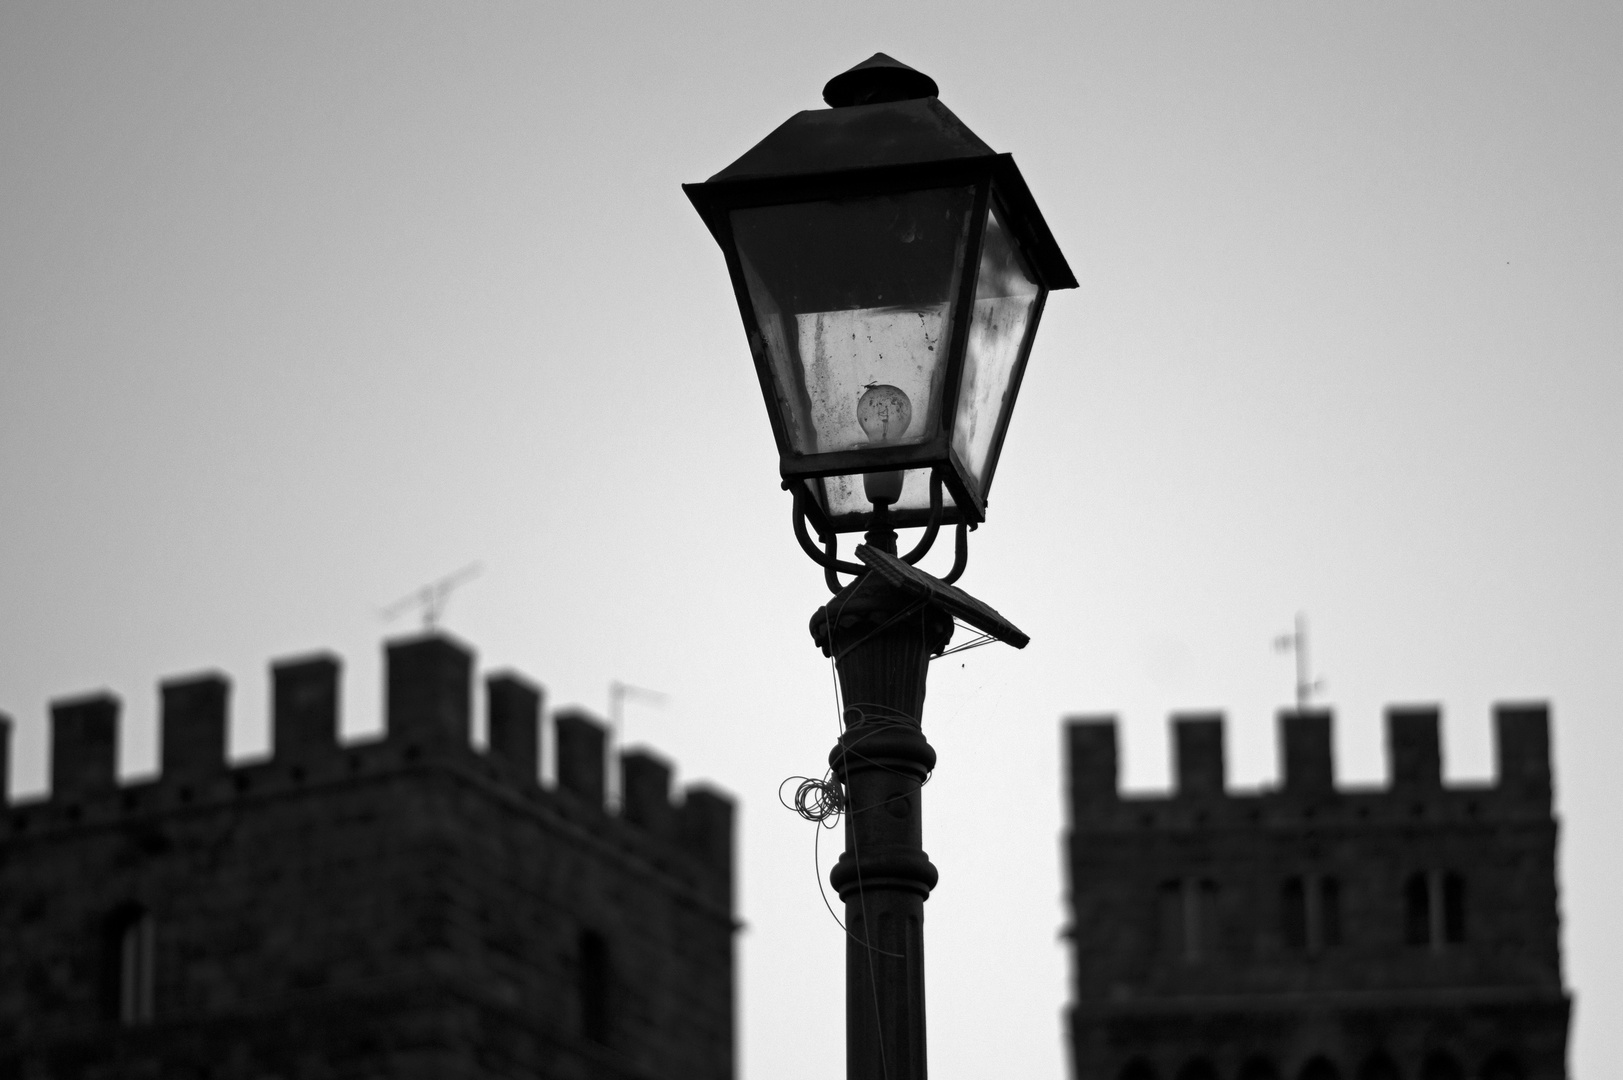 The lamppost in the middle of the castle